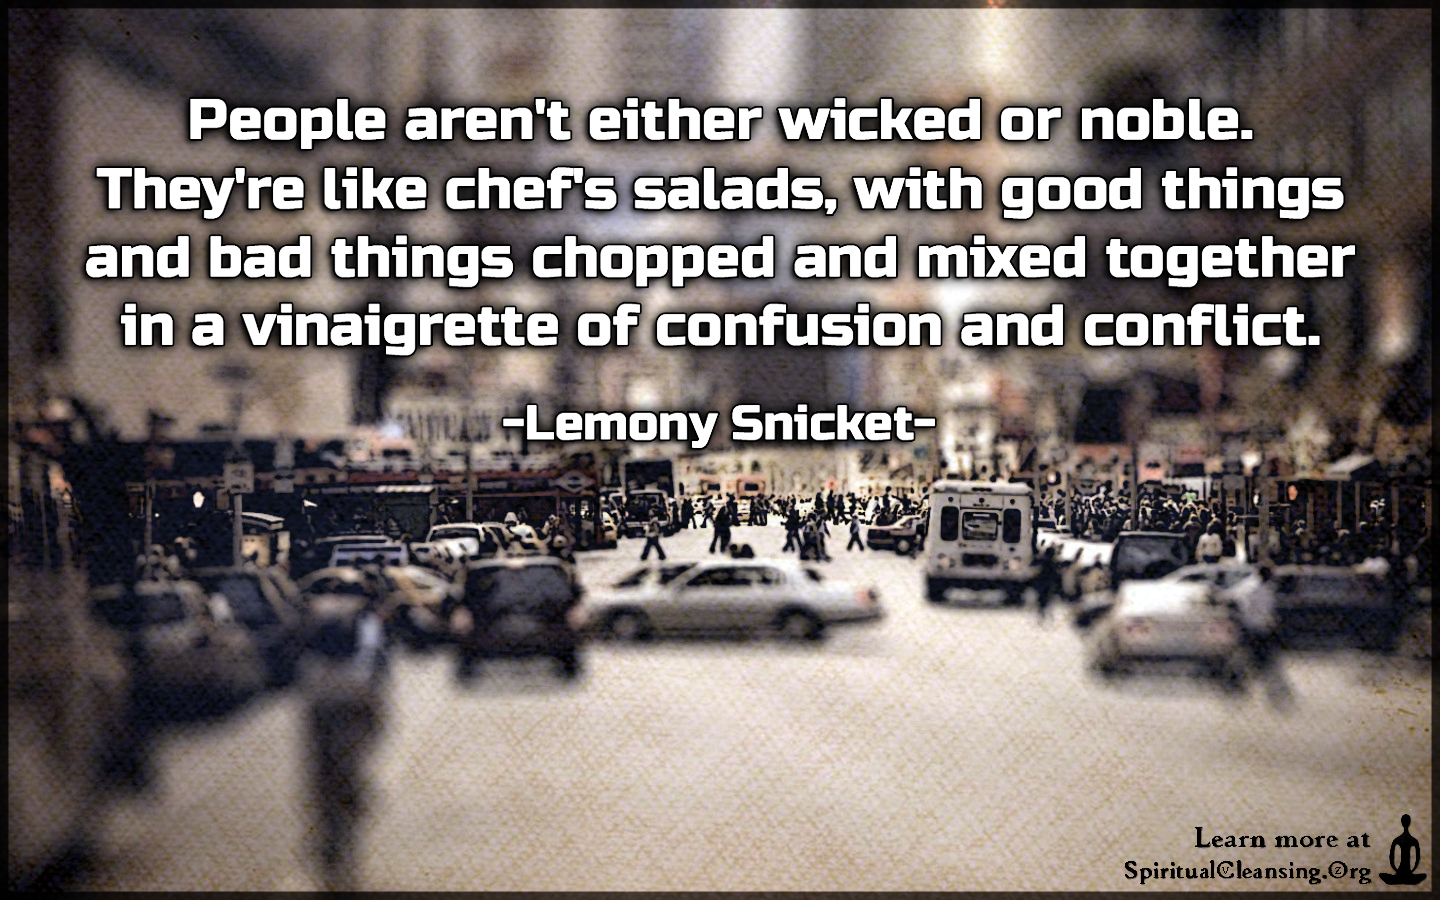 People aren't either wicked or noble. They're like chef's salads, with good things